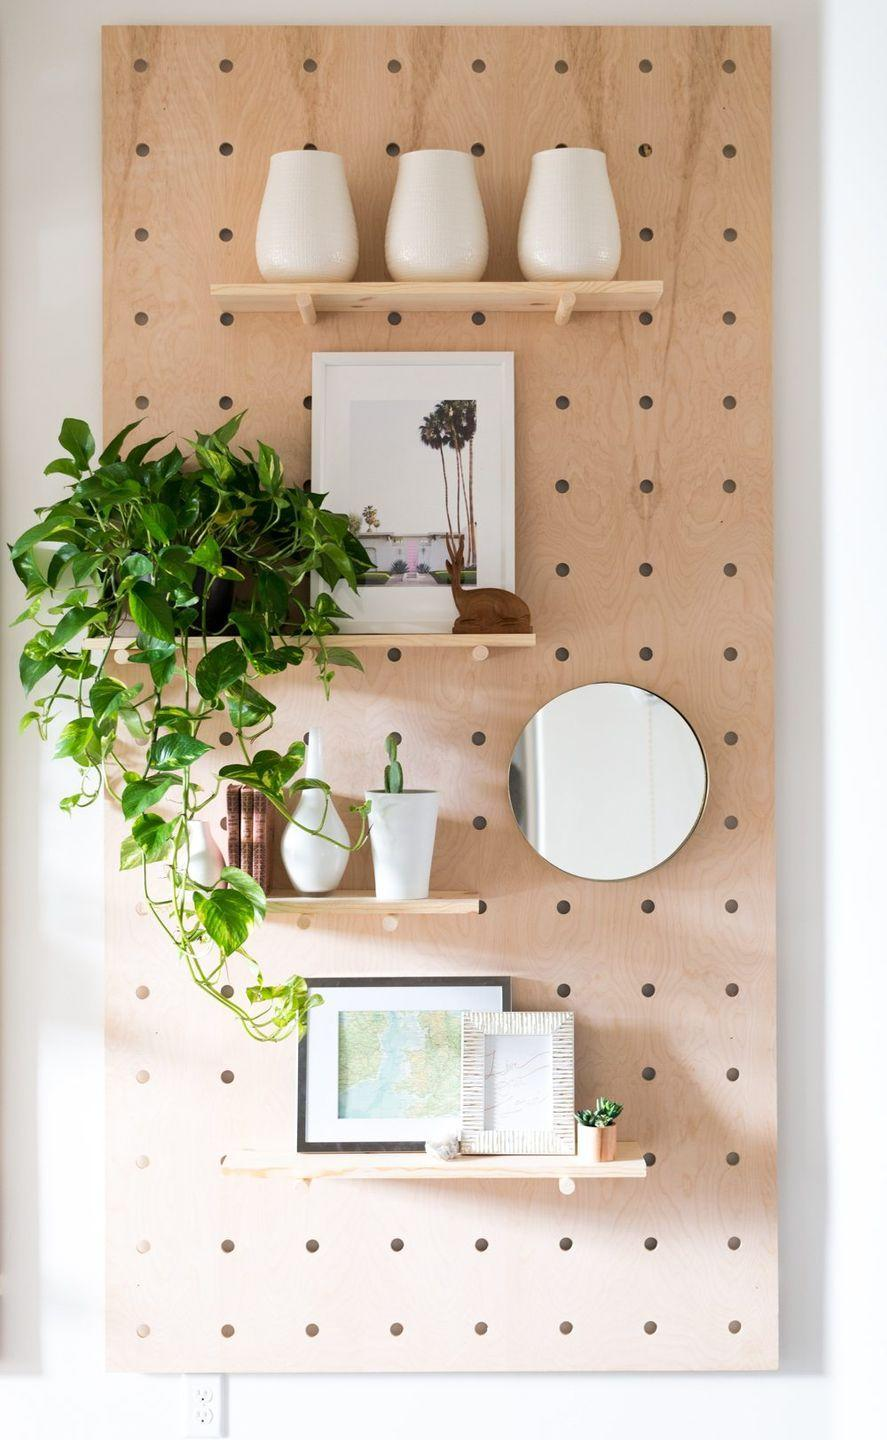 "<p>A pegboard looks good basically anywhere, and you can customize it as much as you want! Learn how to make one yourself from <a href=""https://vintagerevivals.com/2017/01/giant-pegboard-diy"" rel=""nofollow noopener"" target=""_blank"" data-ylk=""slk:Vintage Revivals"" class=""link rapid-noclick-resp"">Vintage Revivals</a>.</p>"